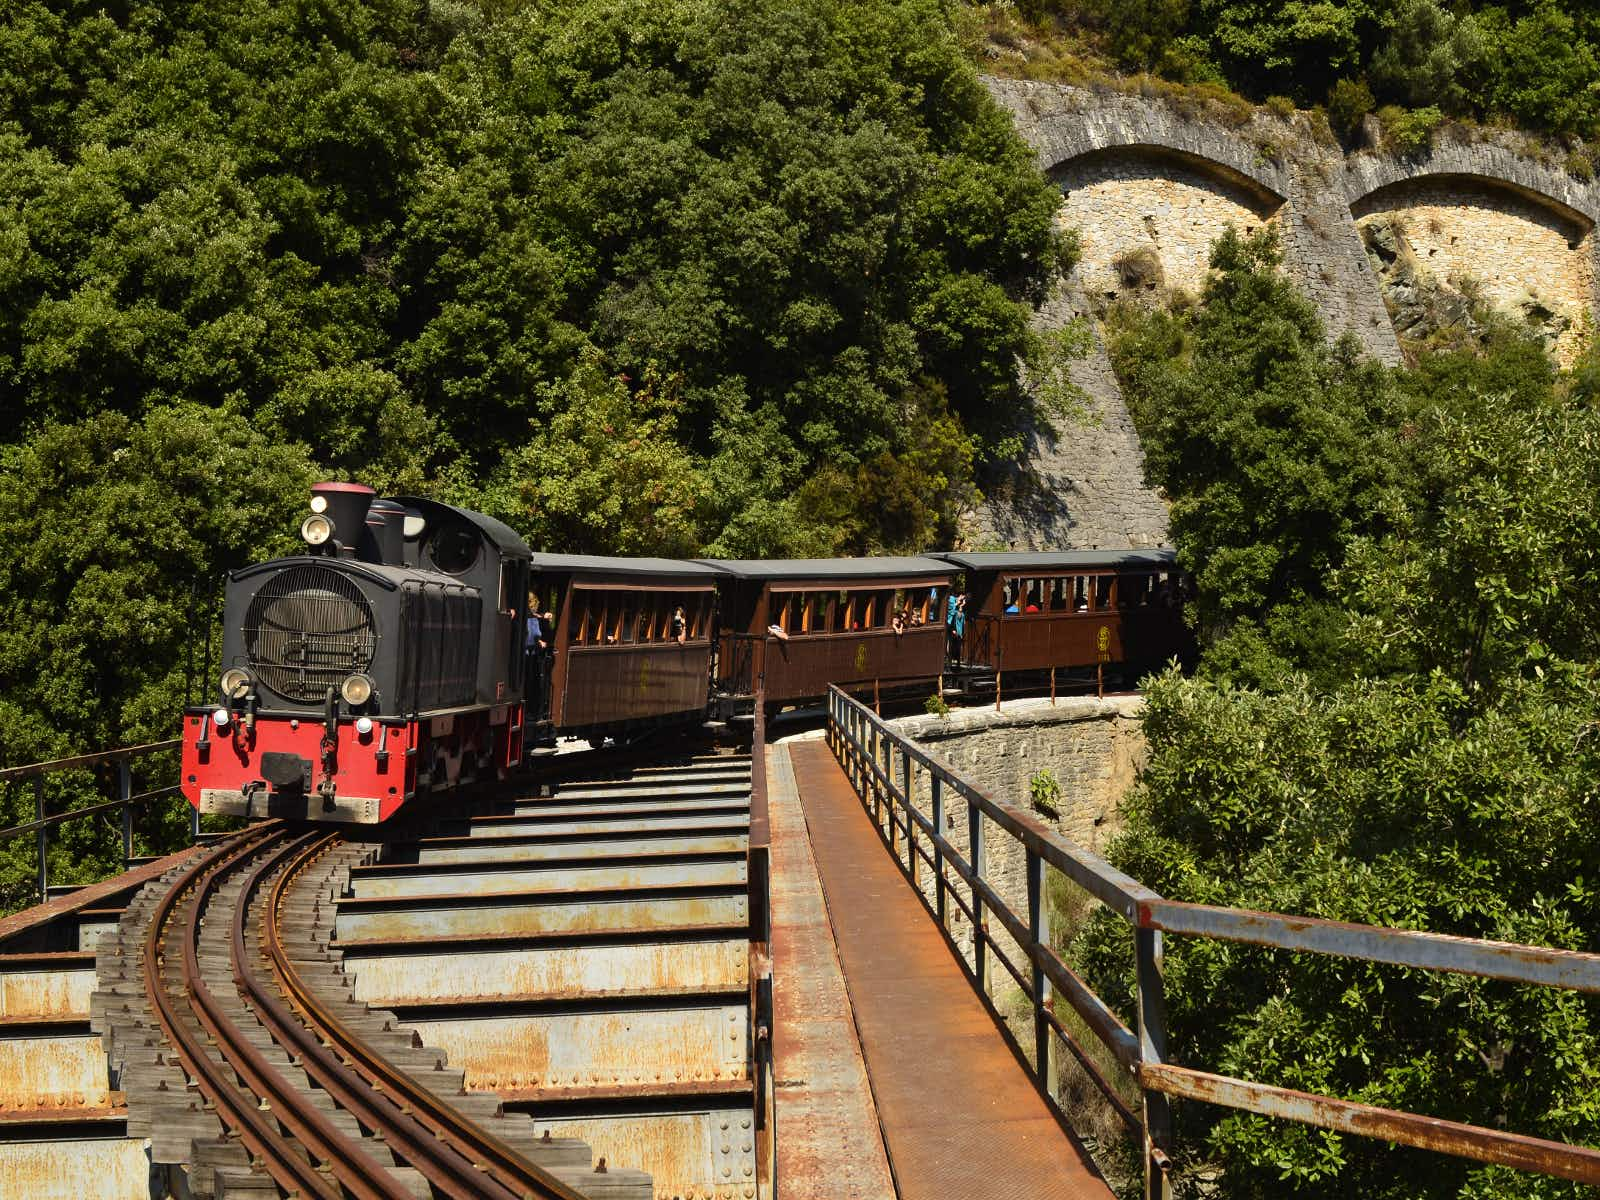 The heritage tourist train crossing a bridge in the mountains of Pelion © fritz16 / Shutterstock